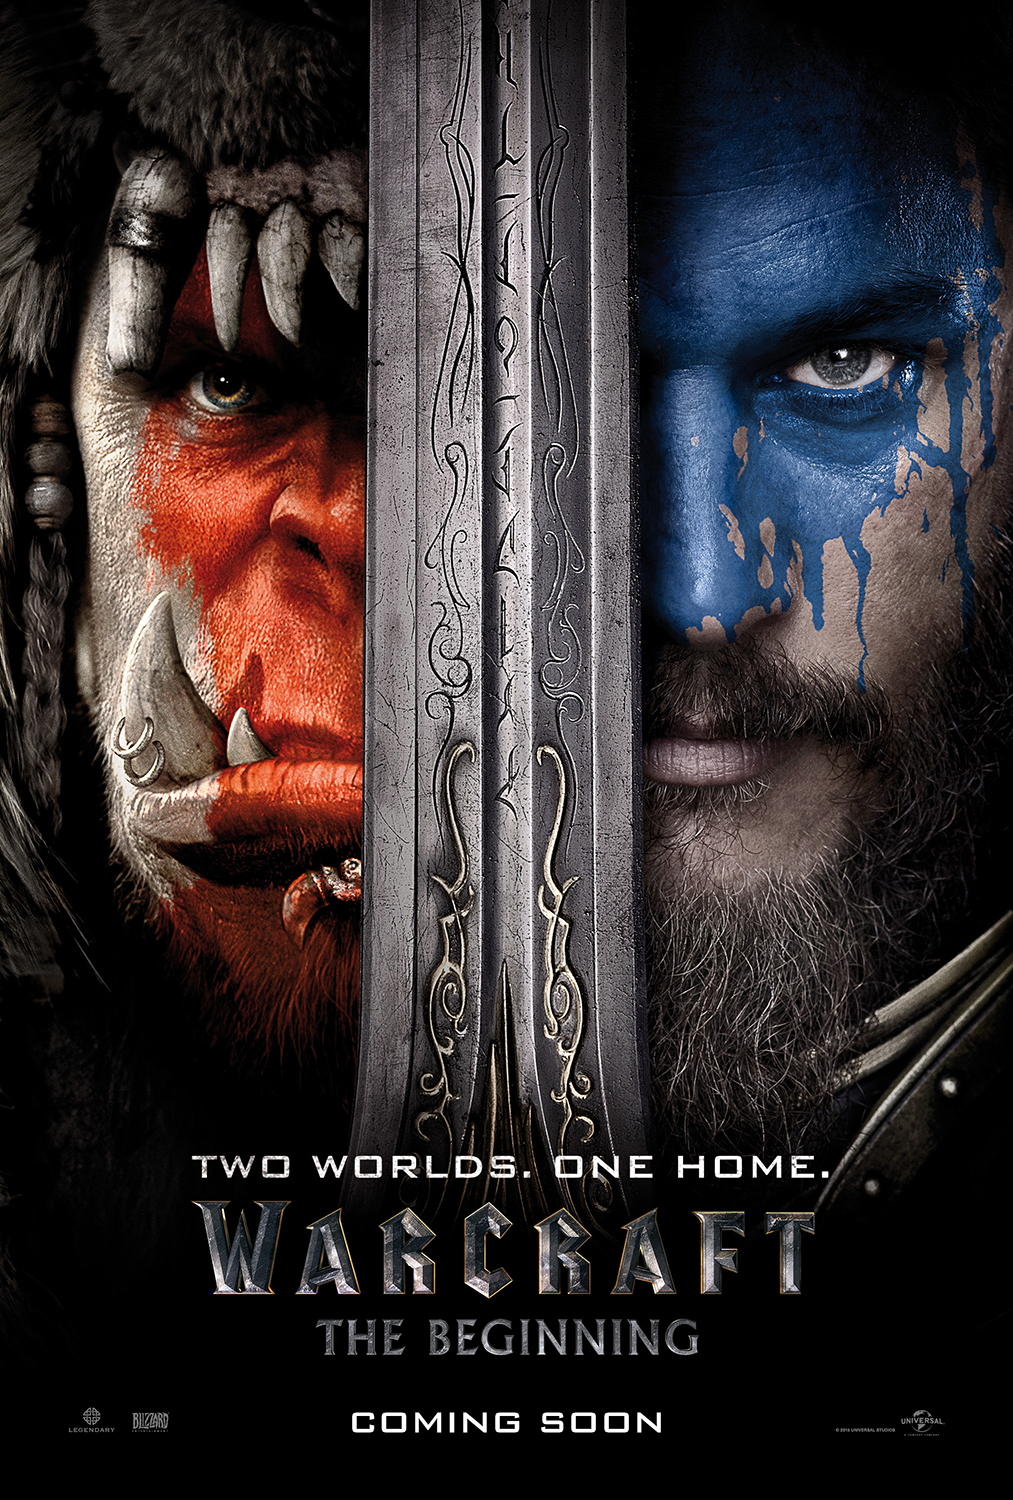 Hollywood Warcraft (2016) Movie Poster